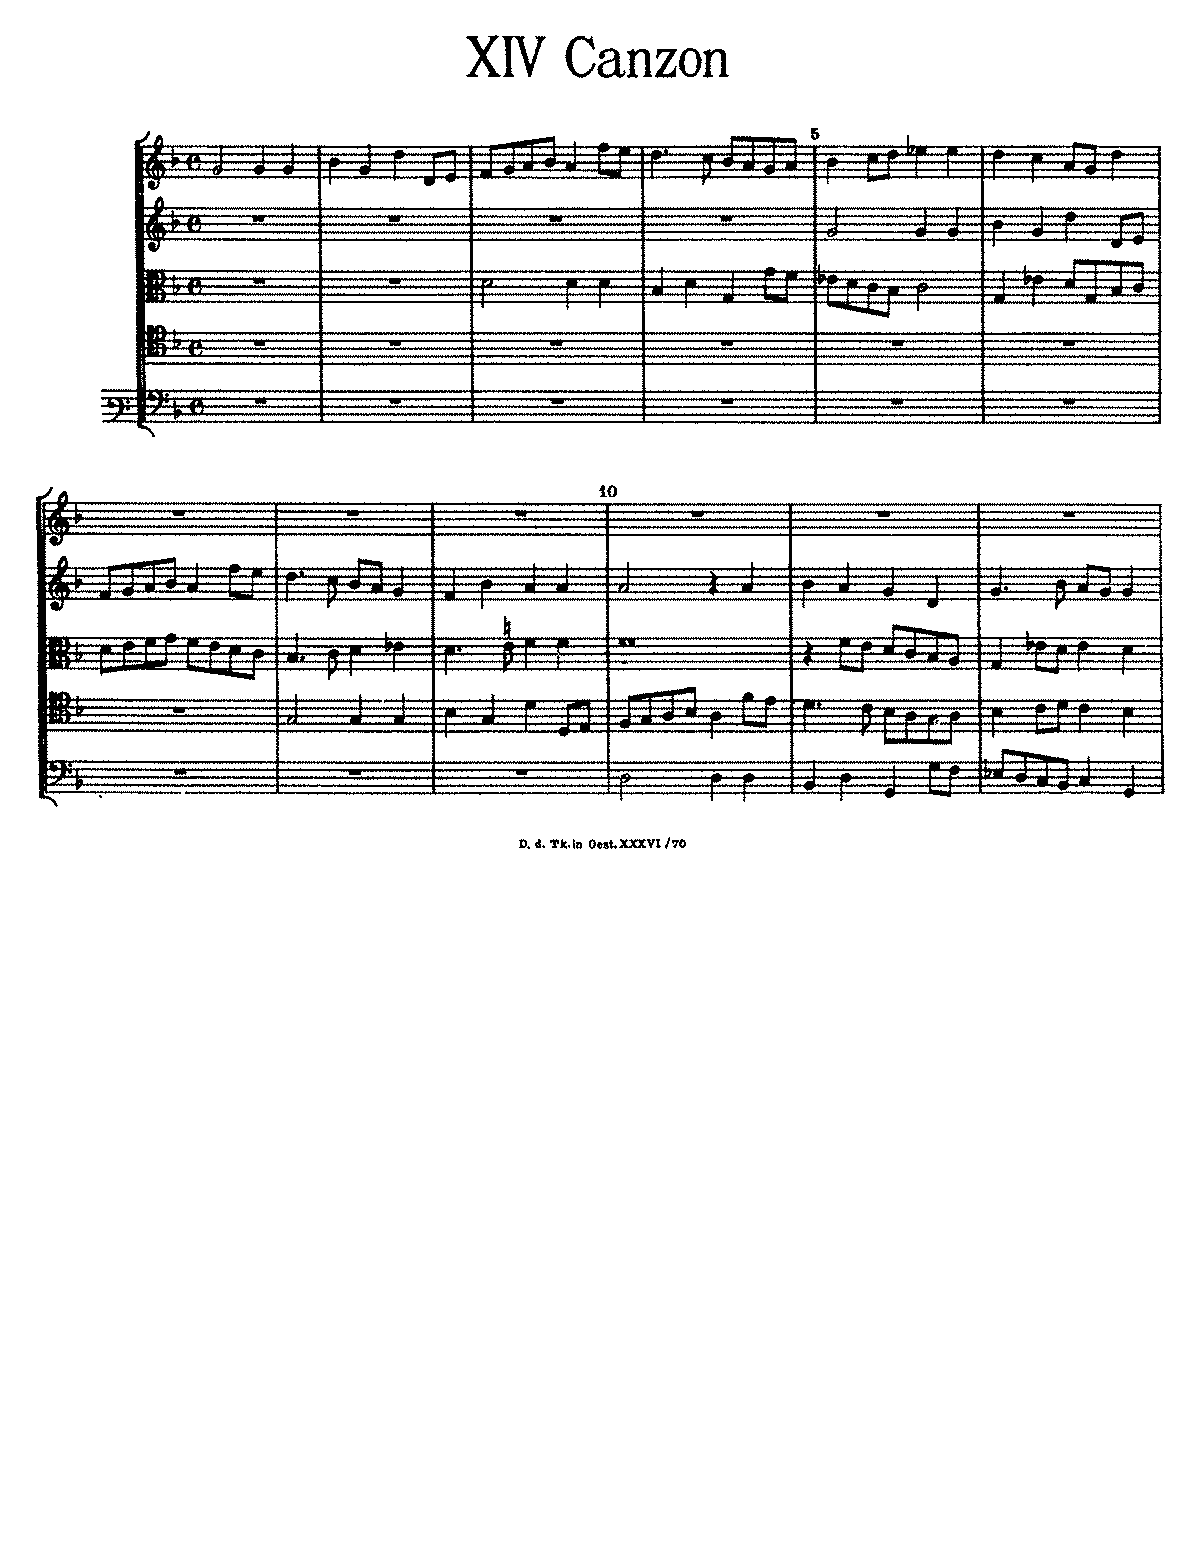 PMLP376048-Peuerl Canzon g minor g major.pdf